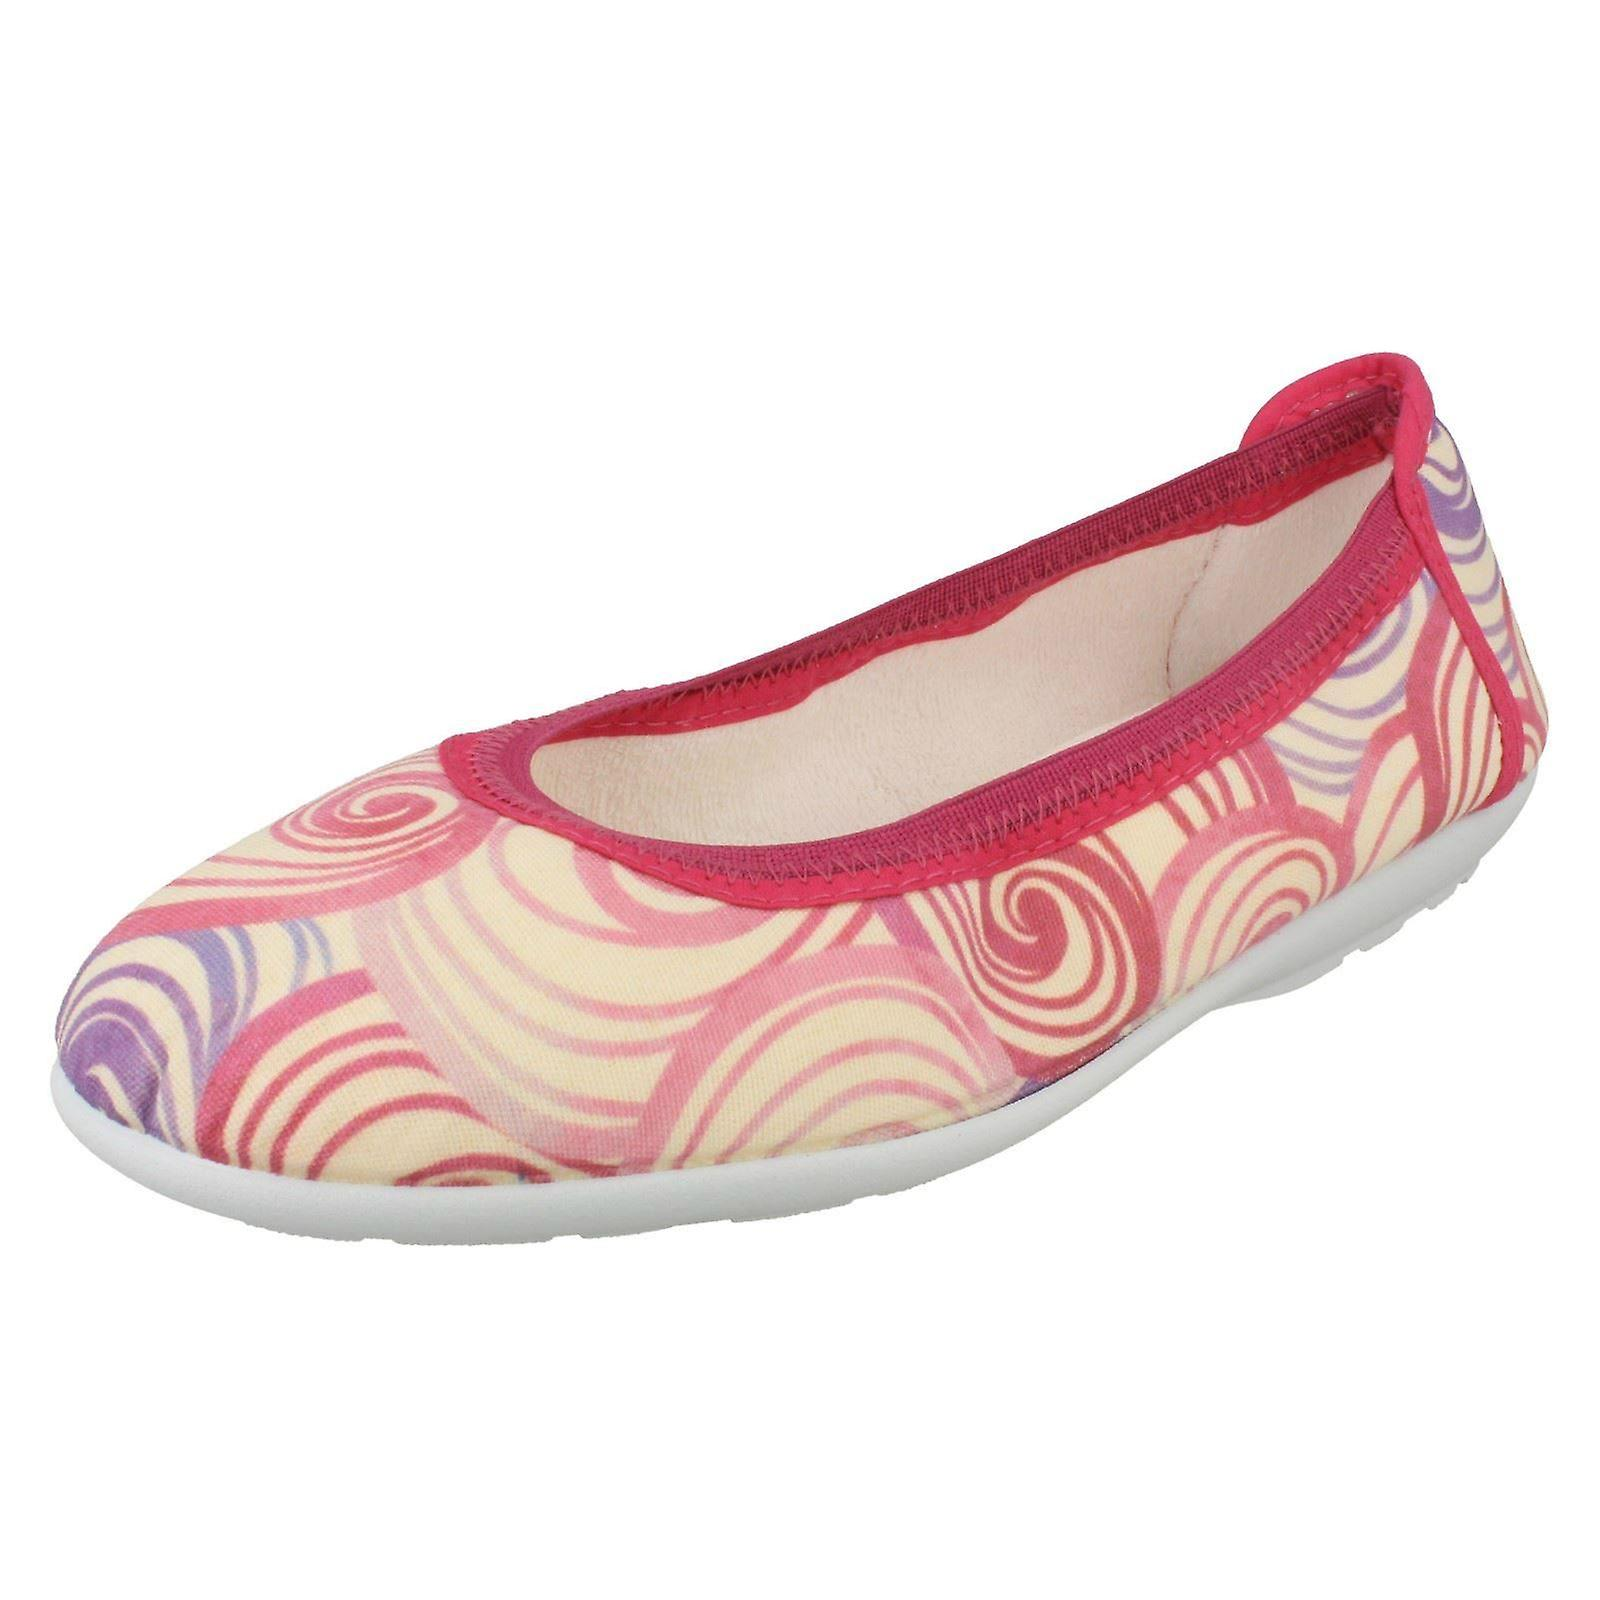 Anna Sonia-01 Womens Ballerina Flat Boat Slip-on Candy Bright Color Casual Flat Berry 8